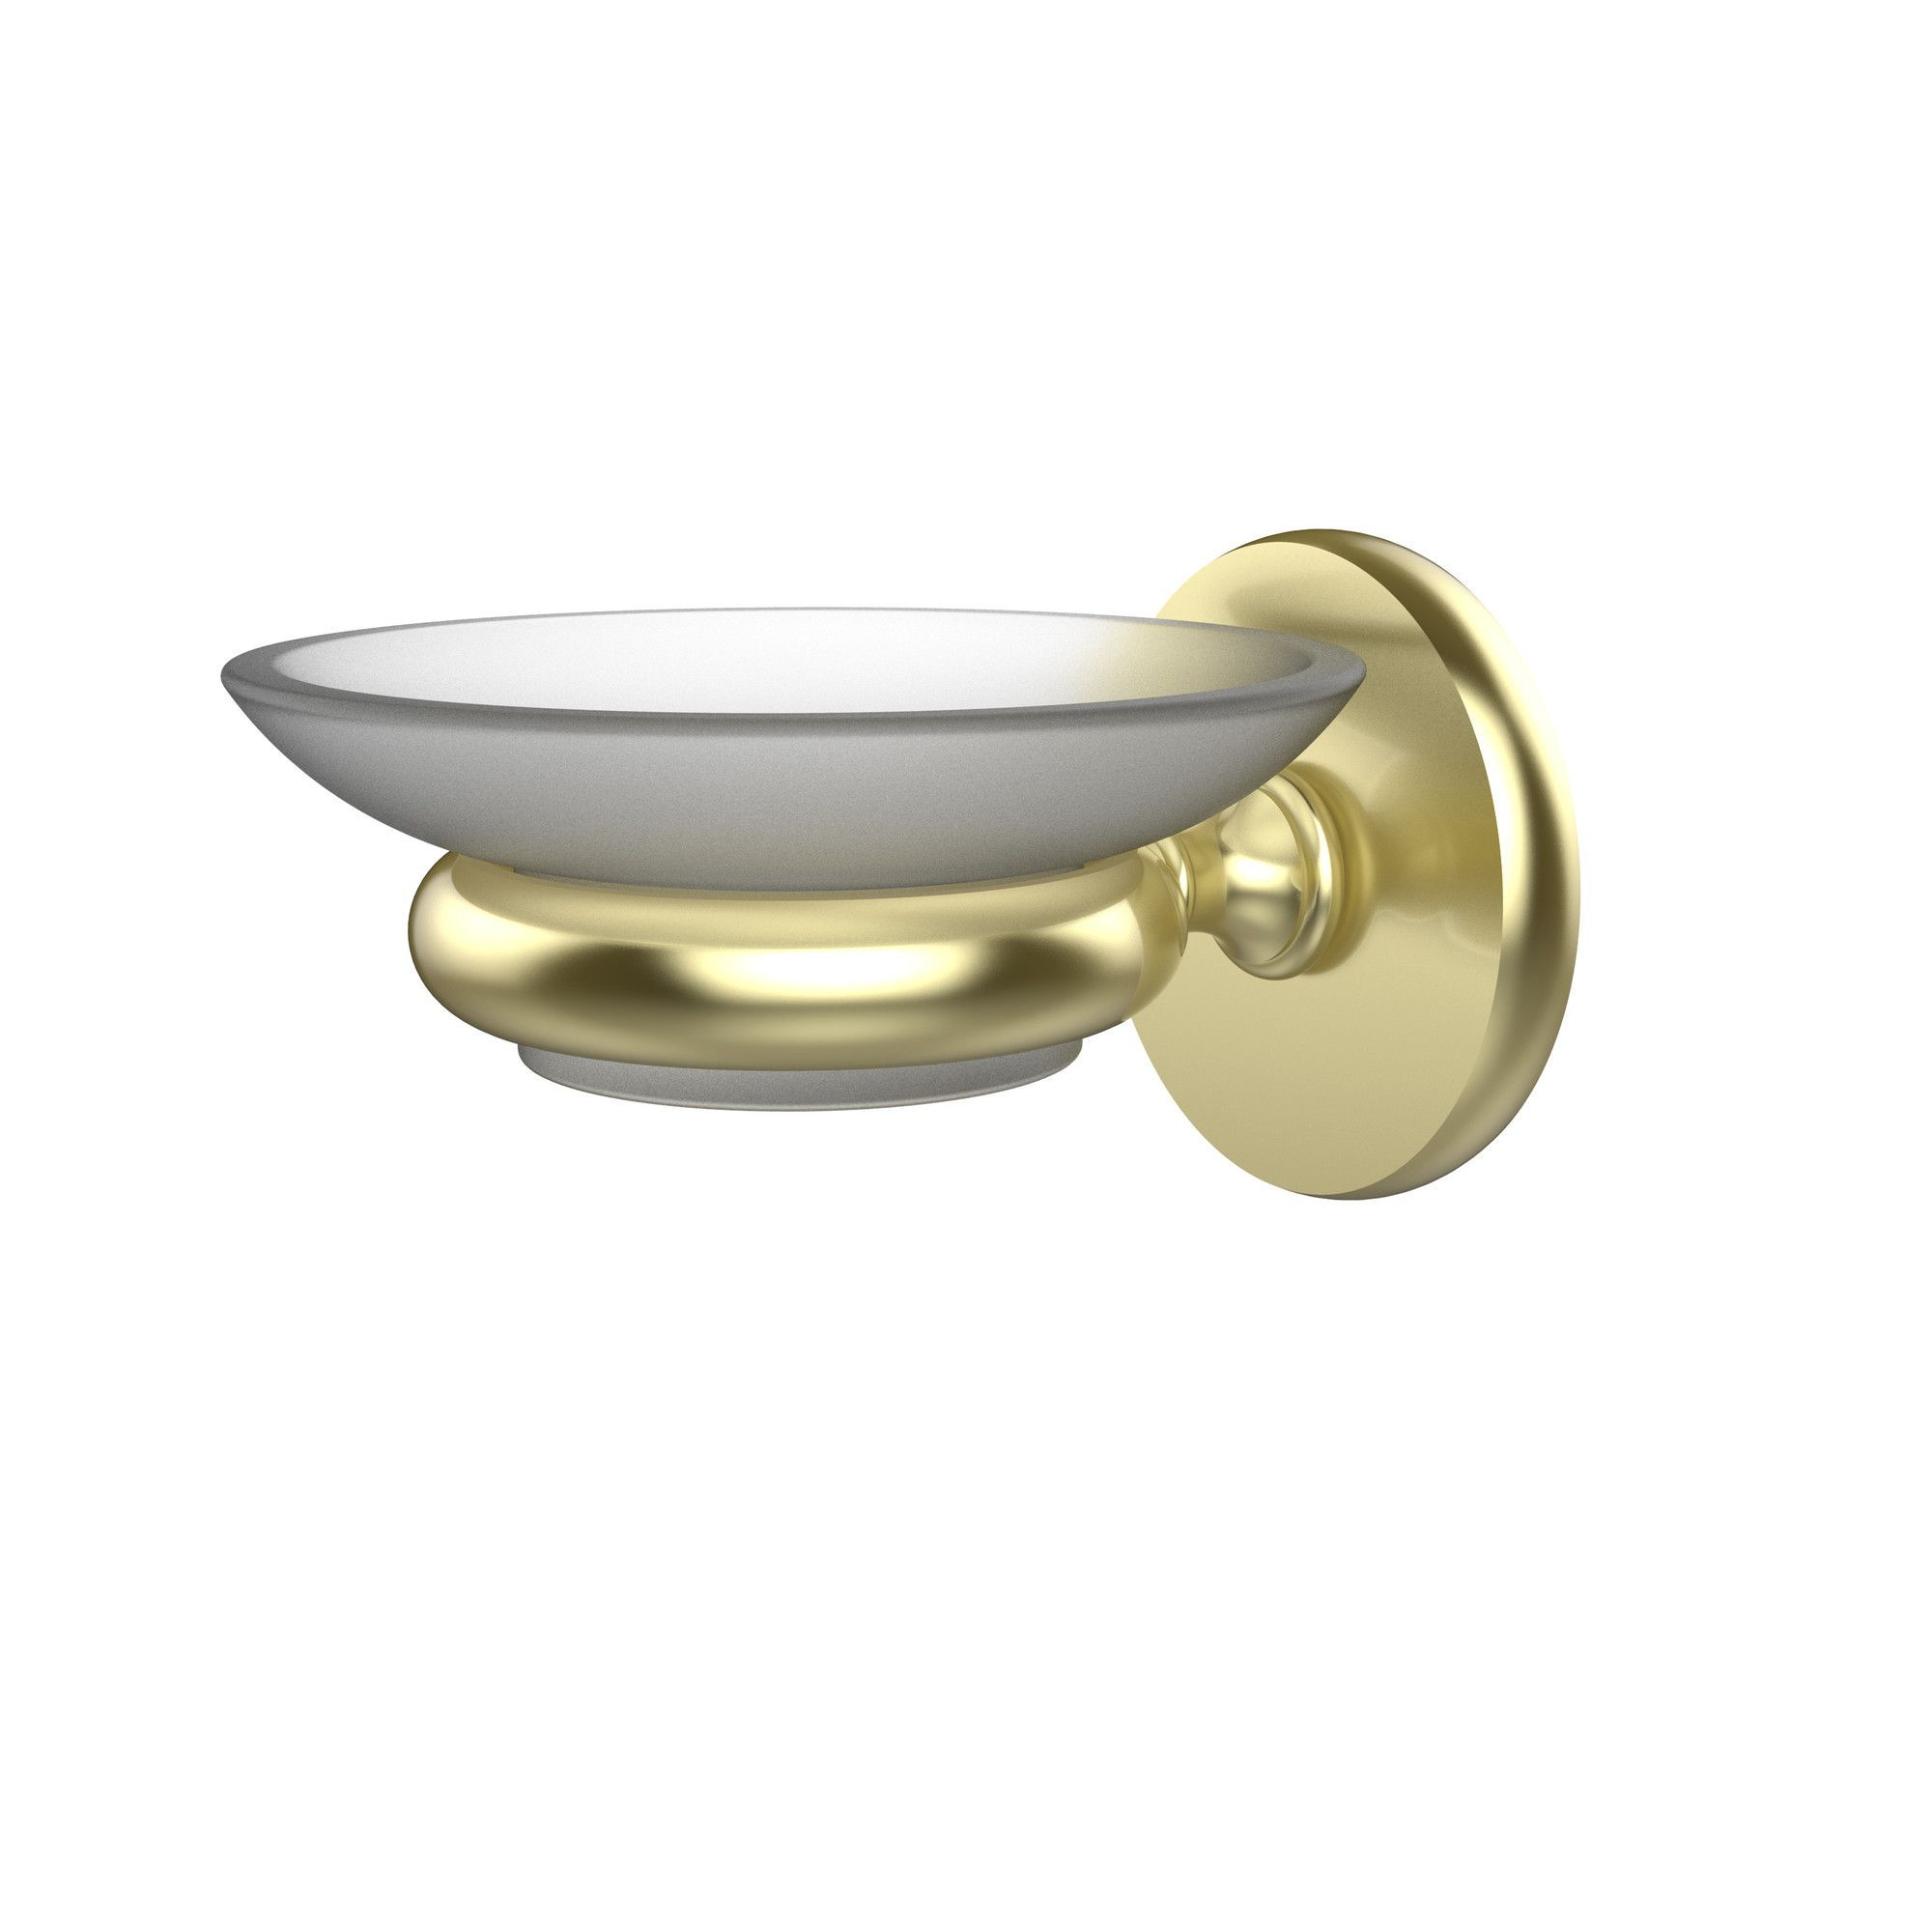 Universal Wall Mounted Soap Dish Products Soap